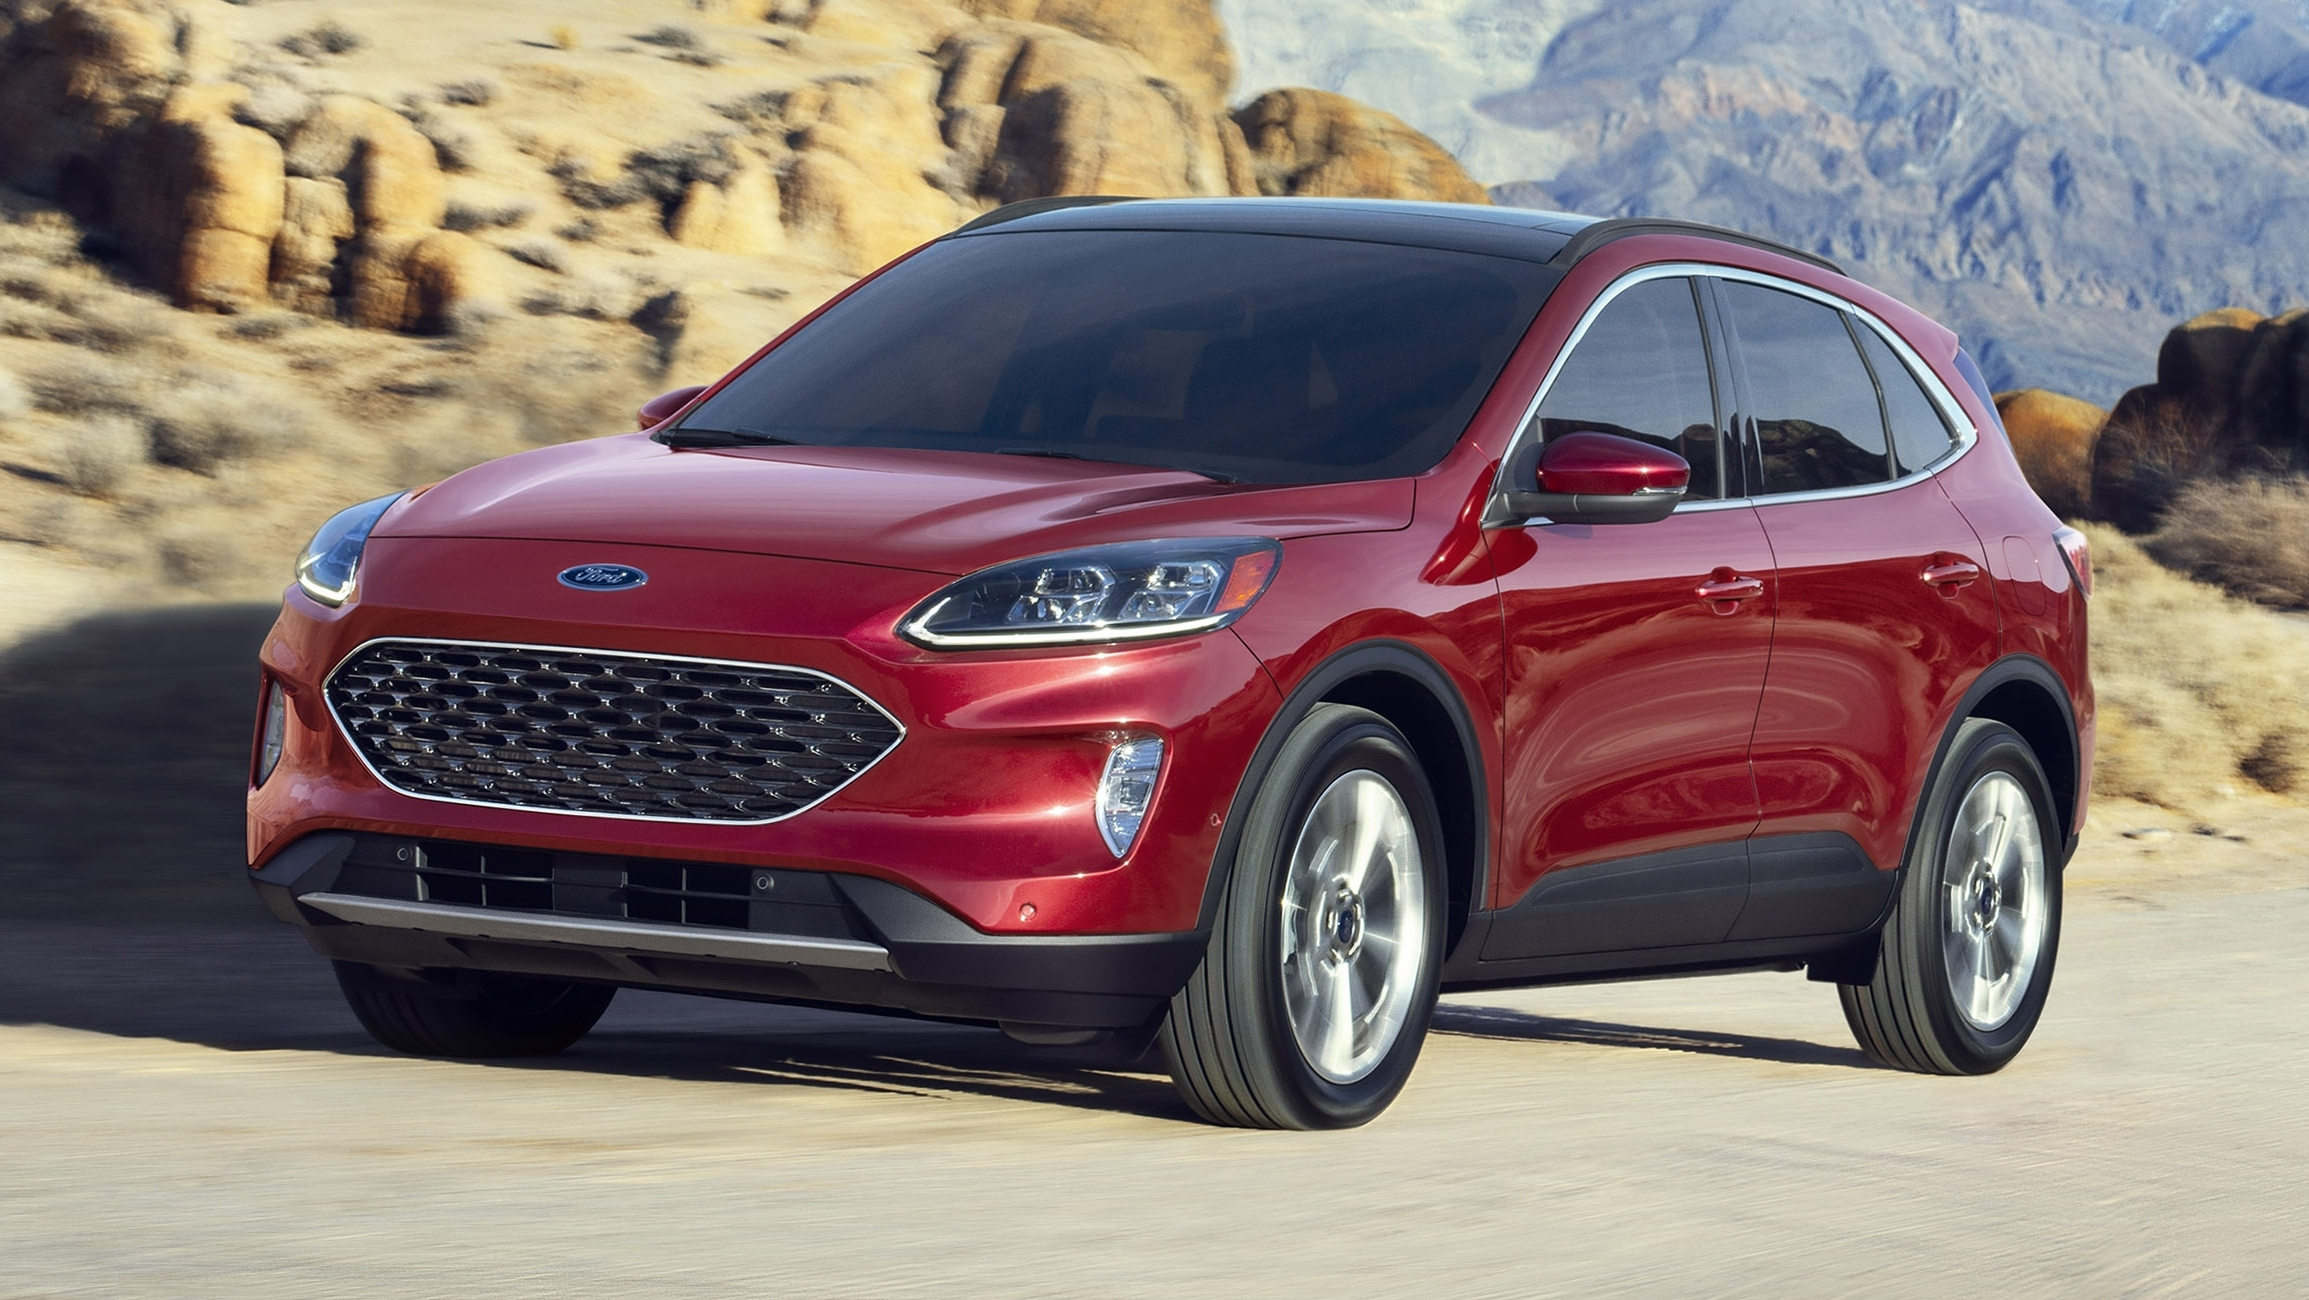 Xtomi's Rending Of The 2021 Ford Escape (Kuga) St Gives Us